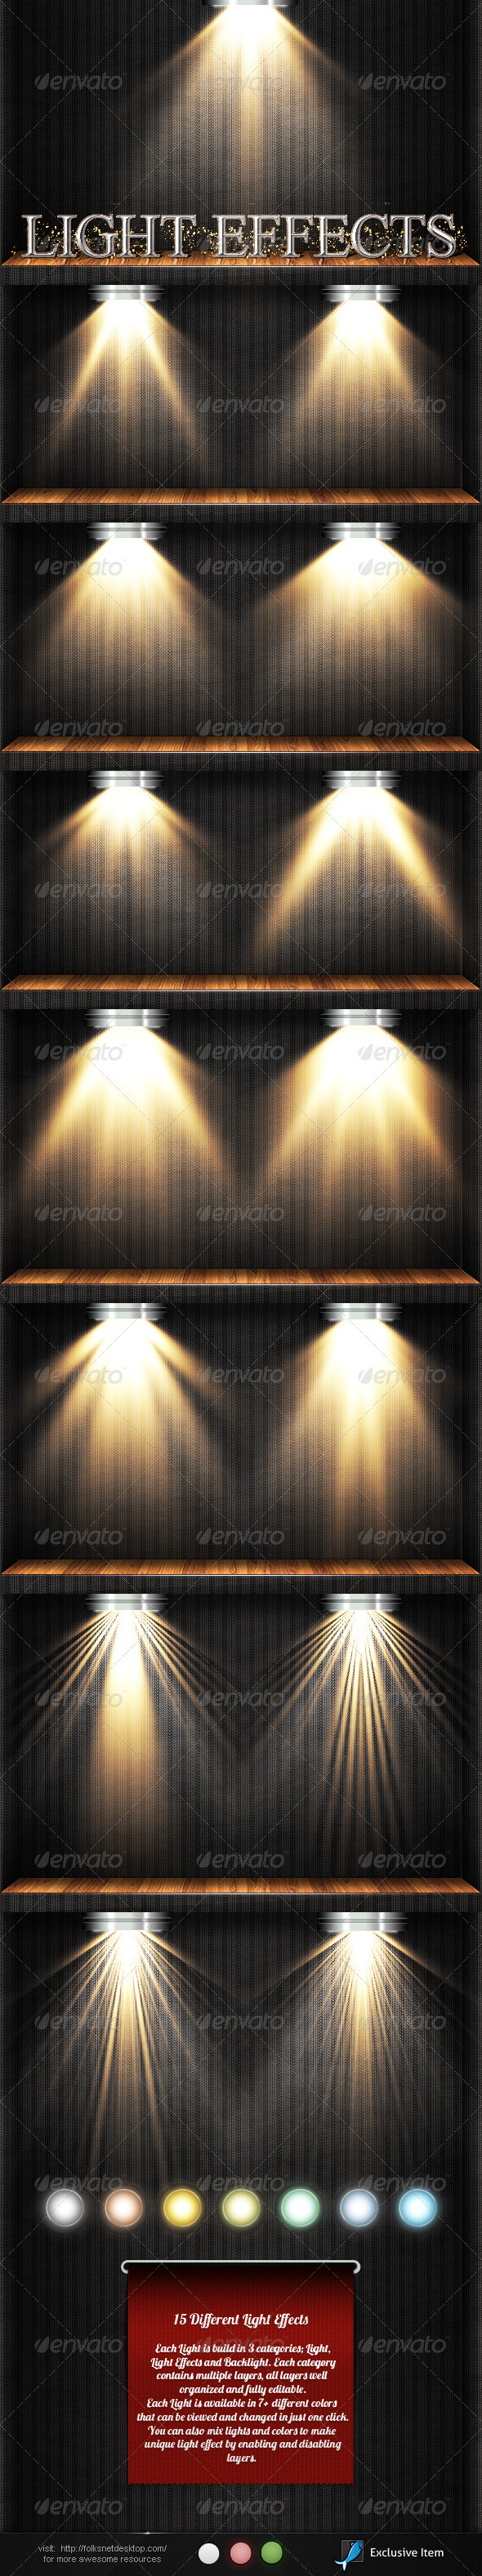 Light Effects Set 3 - Decorative Graphics